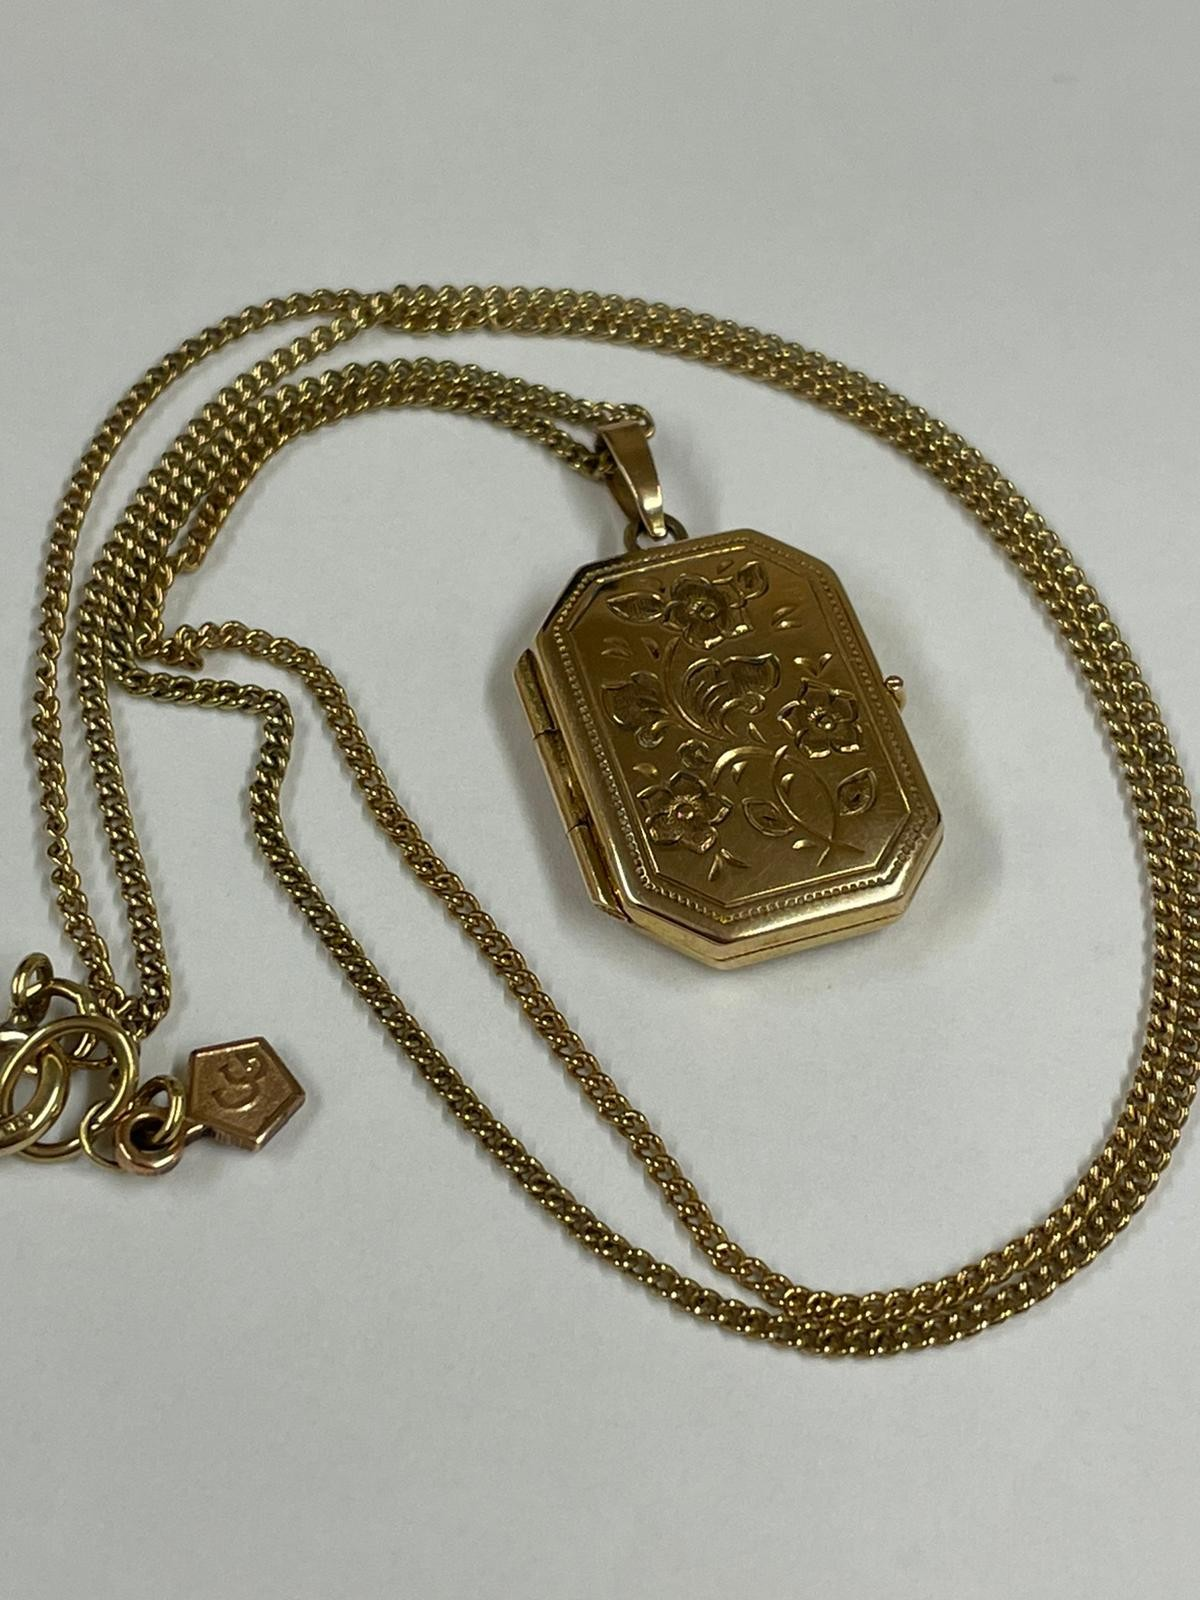 Vintage Clogau 9k yellow gold chain and locket , fully hallmarked.